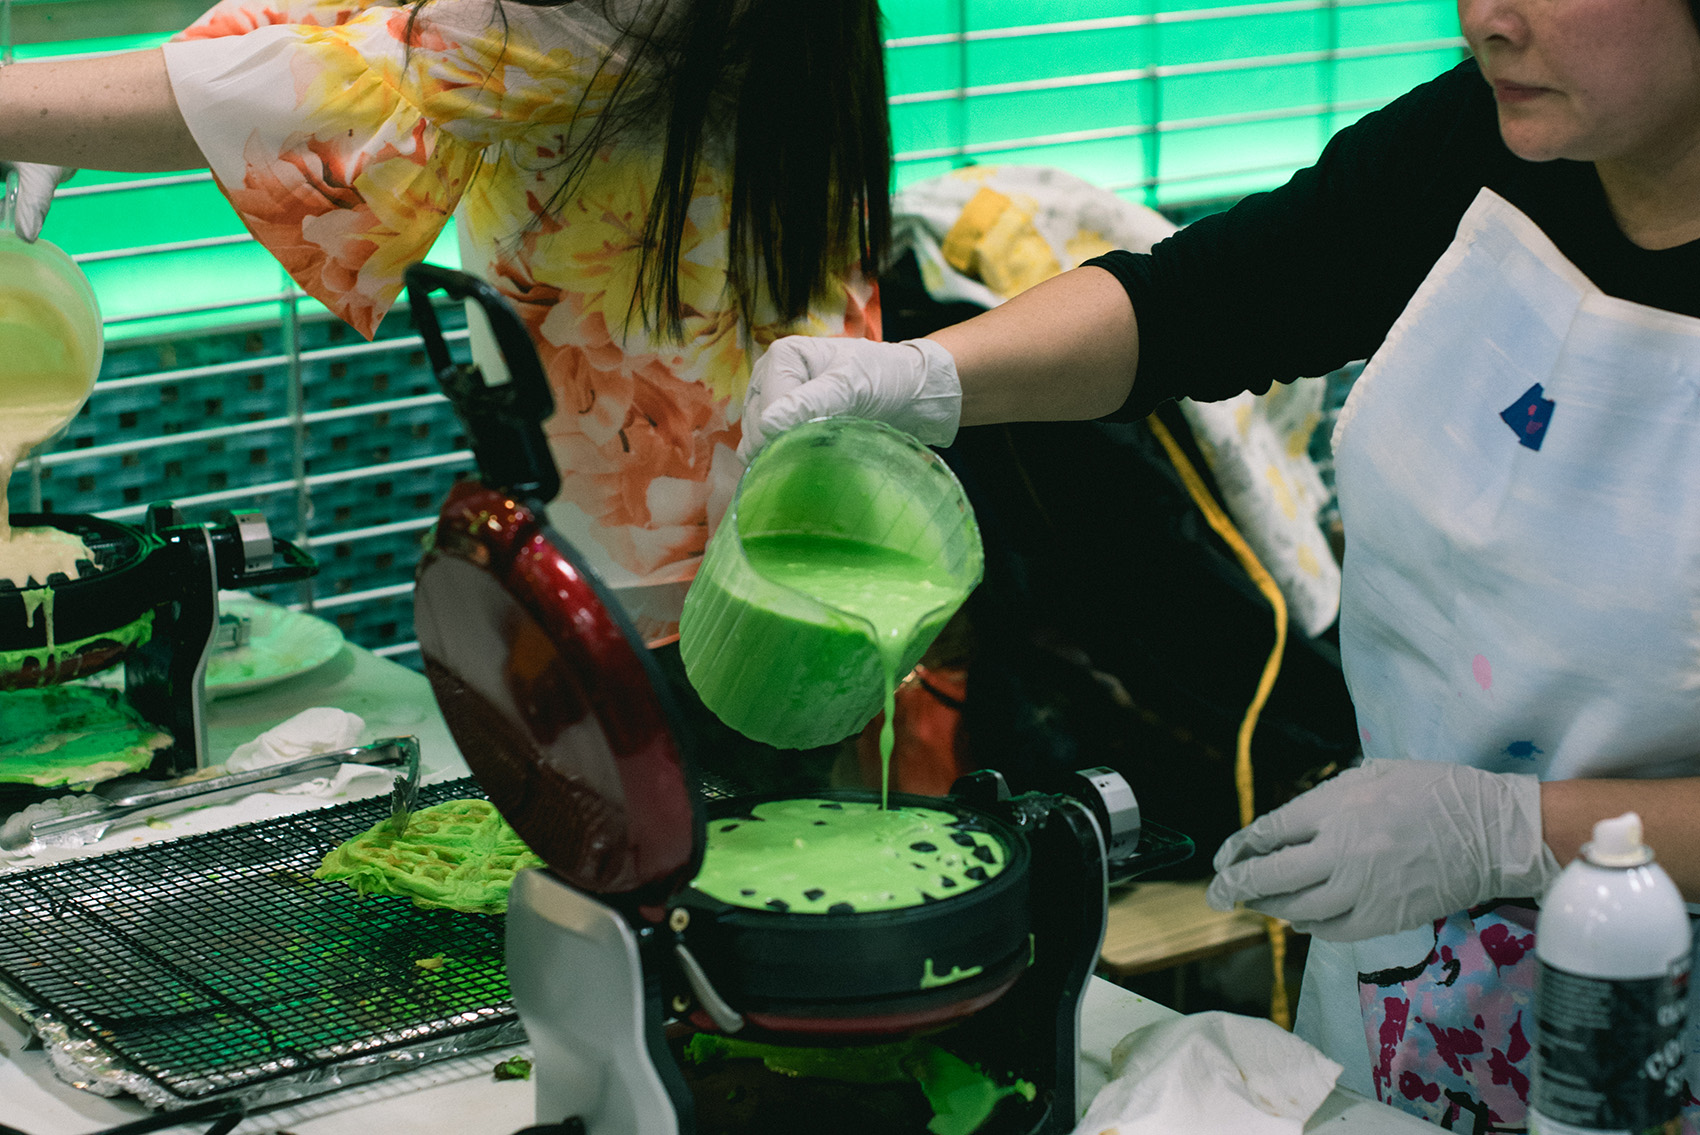 Photo of pandan waffles being cooked on waffle irons